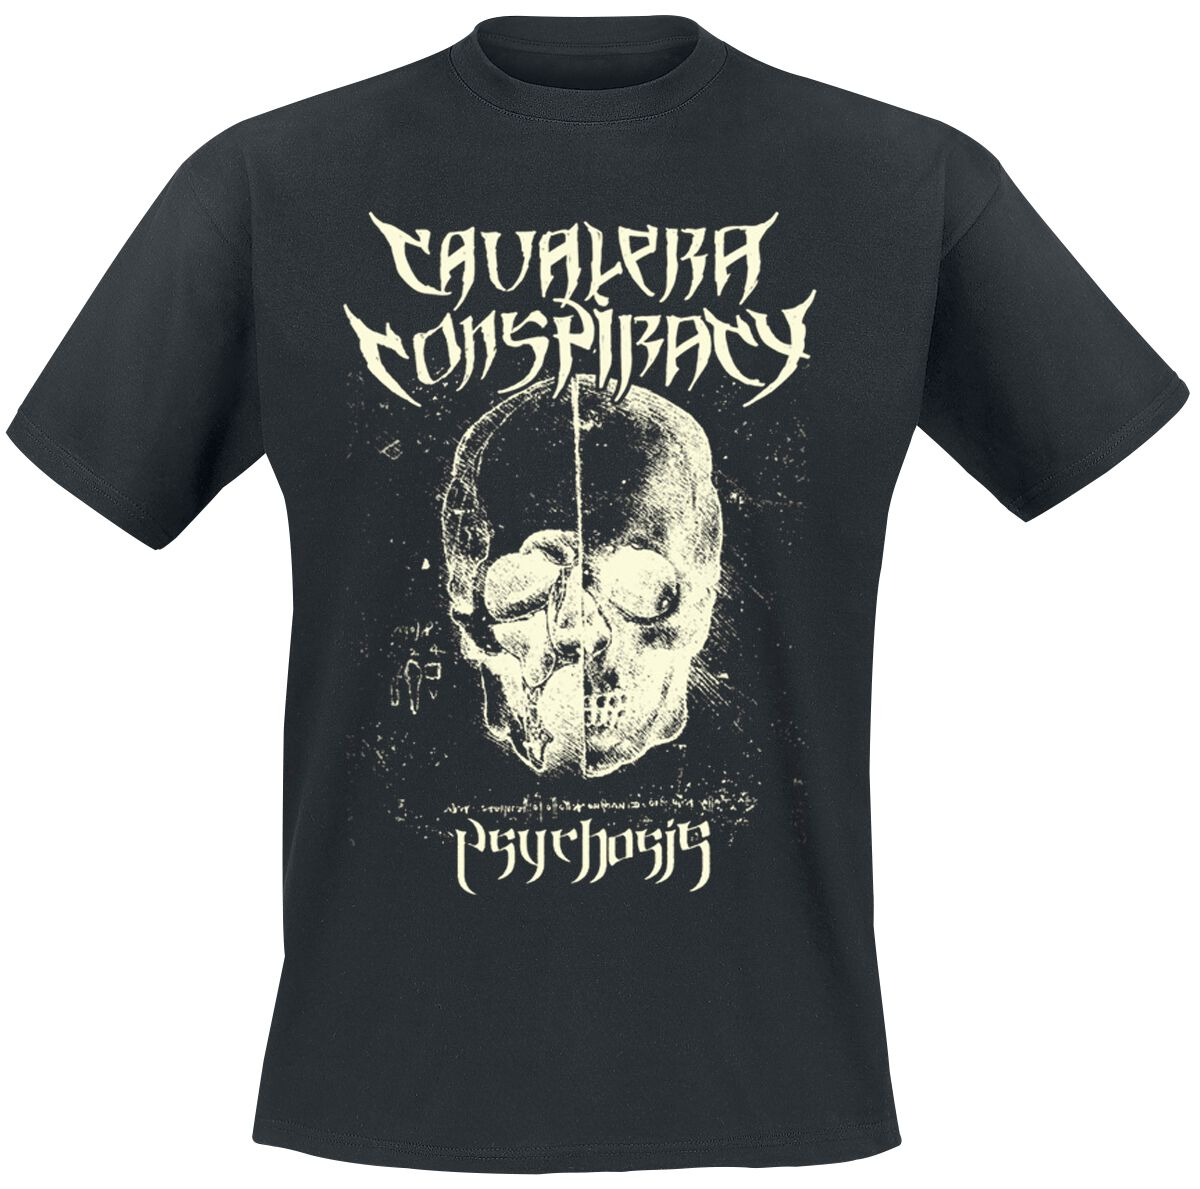 Image of   Cavalera Conspiracy Psychosis T-Shirt sort